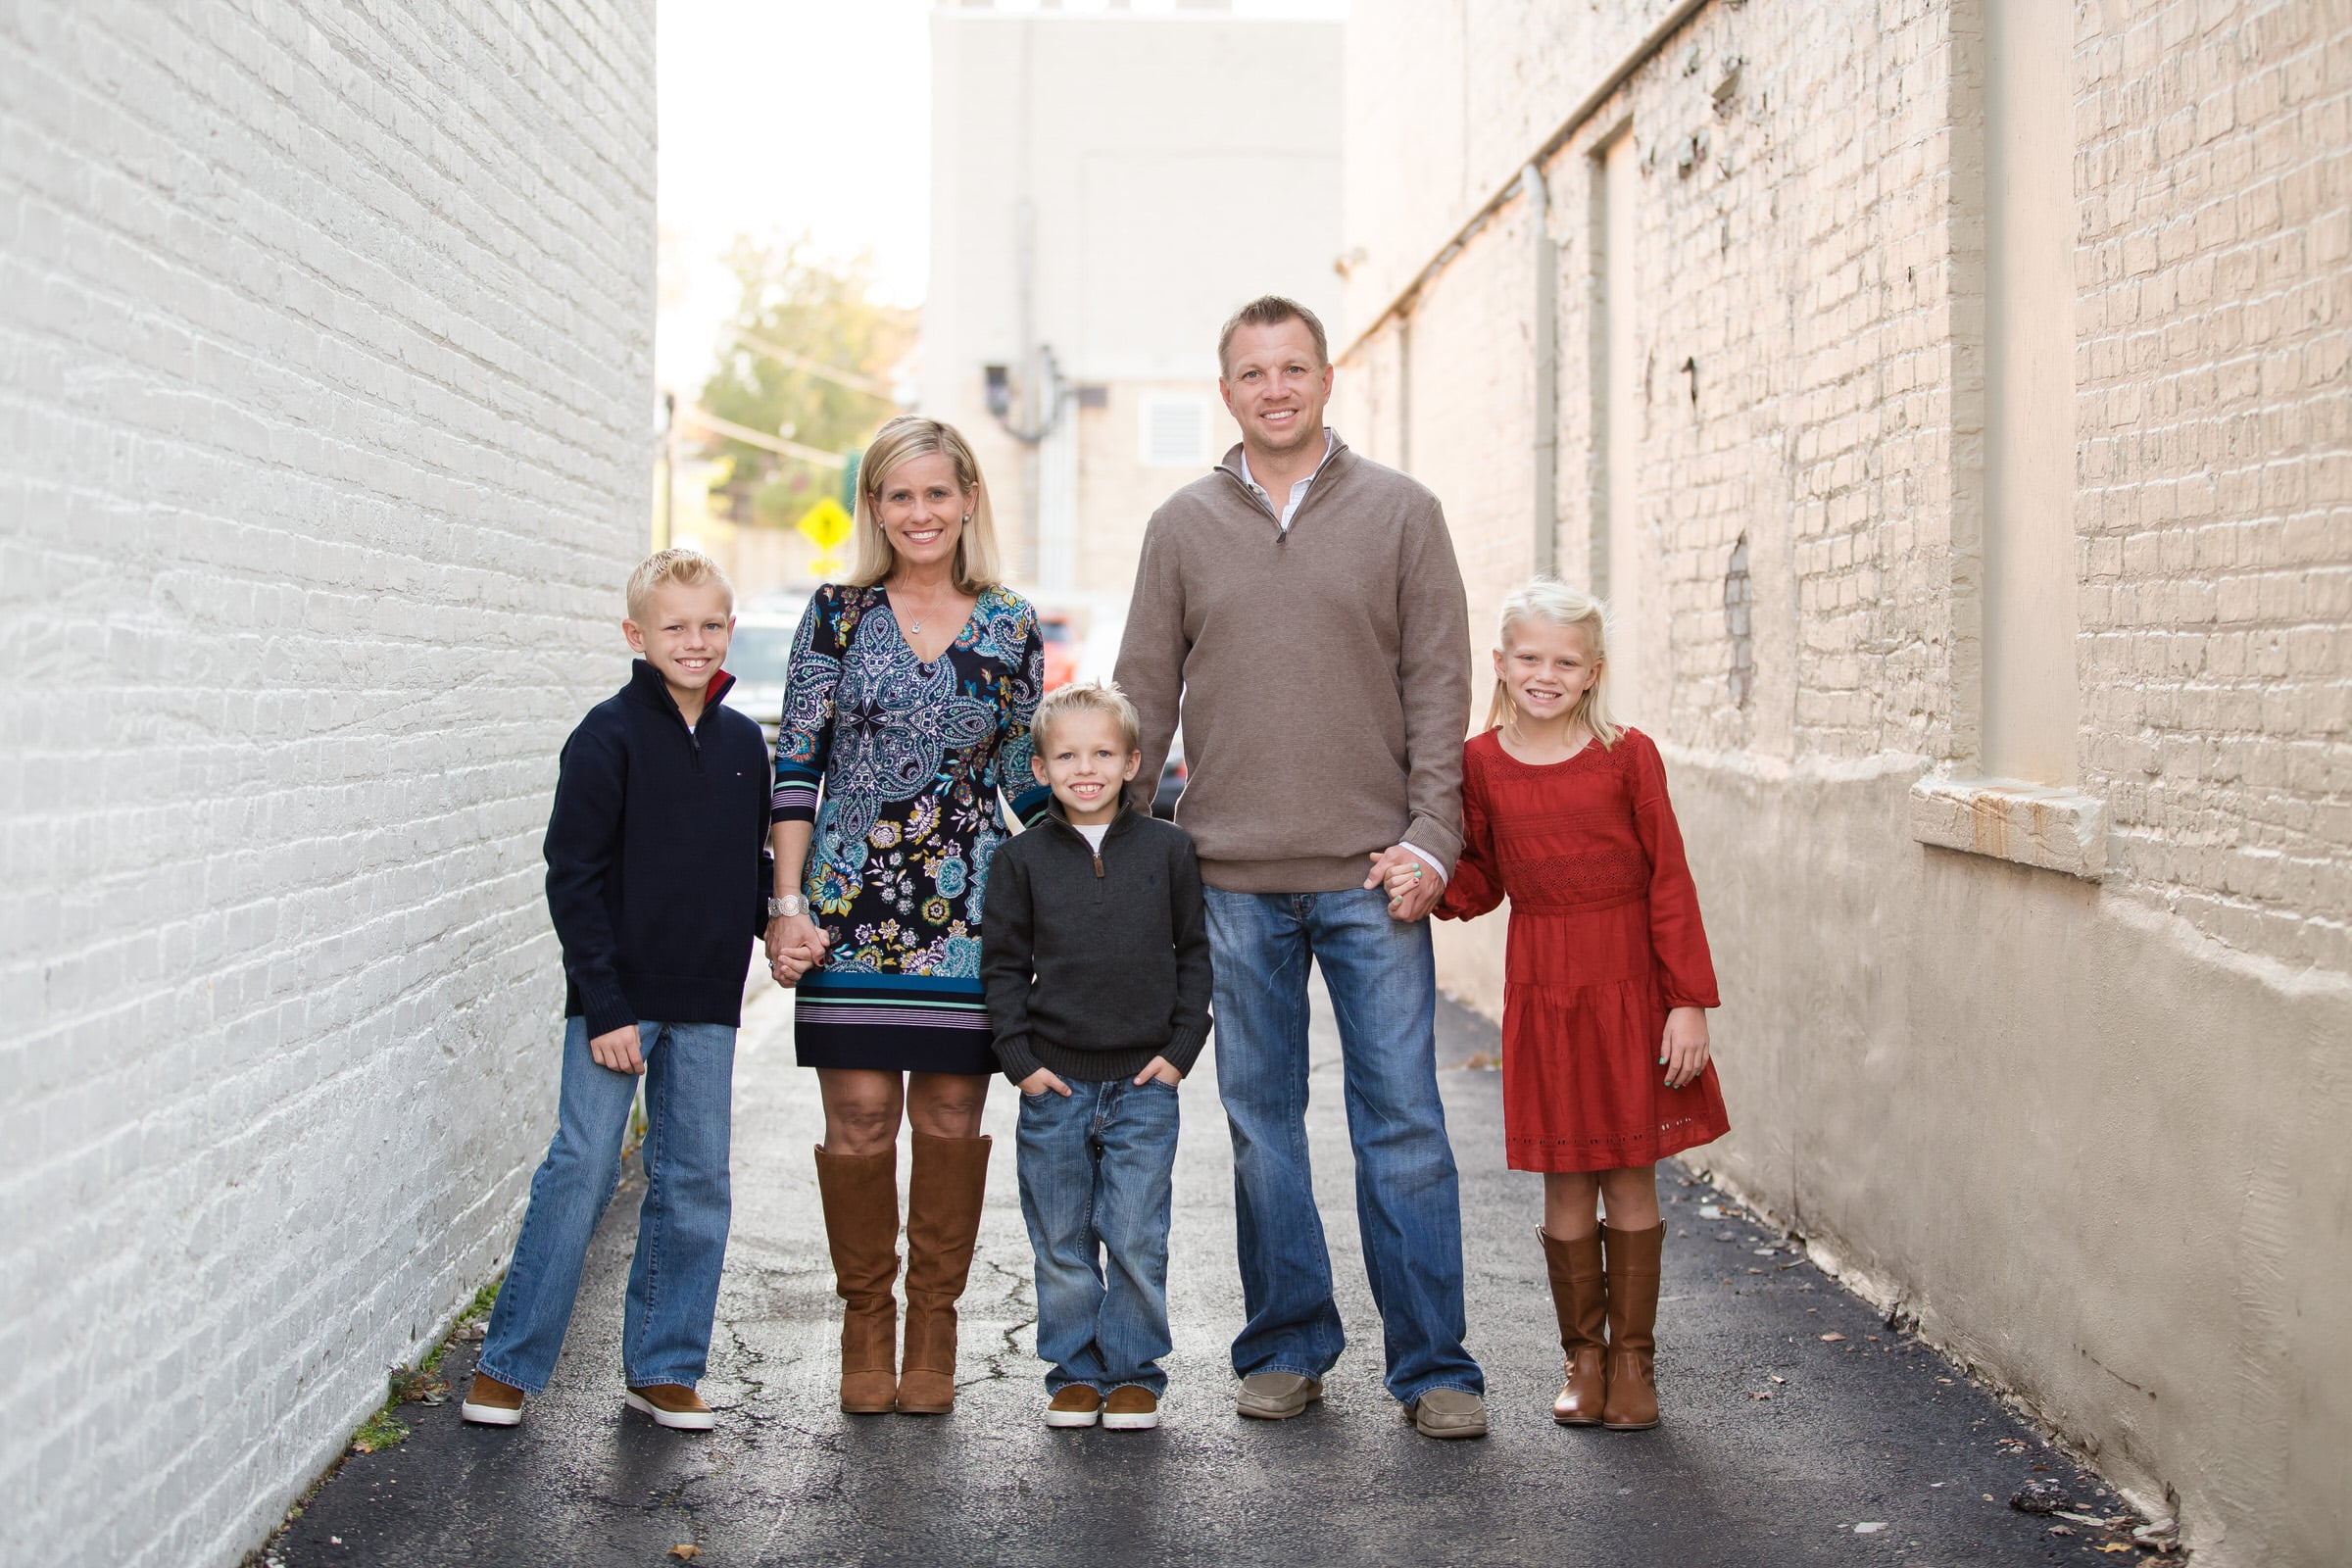 family photographer naperville illinois